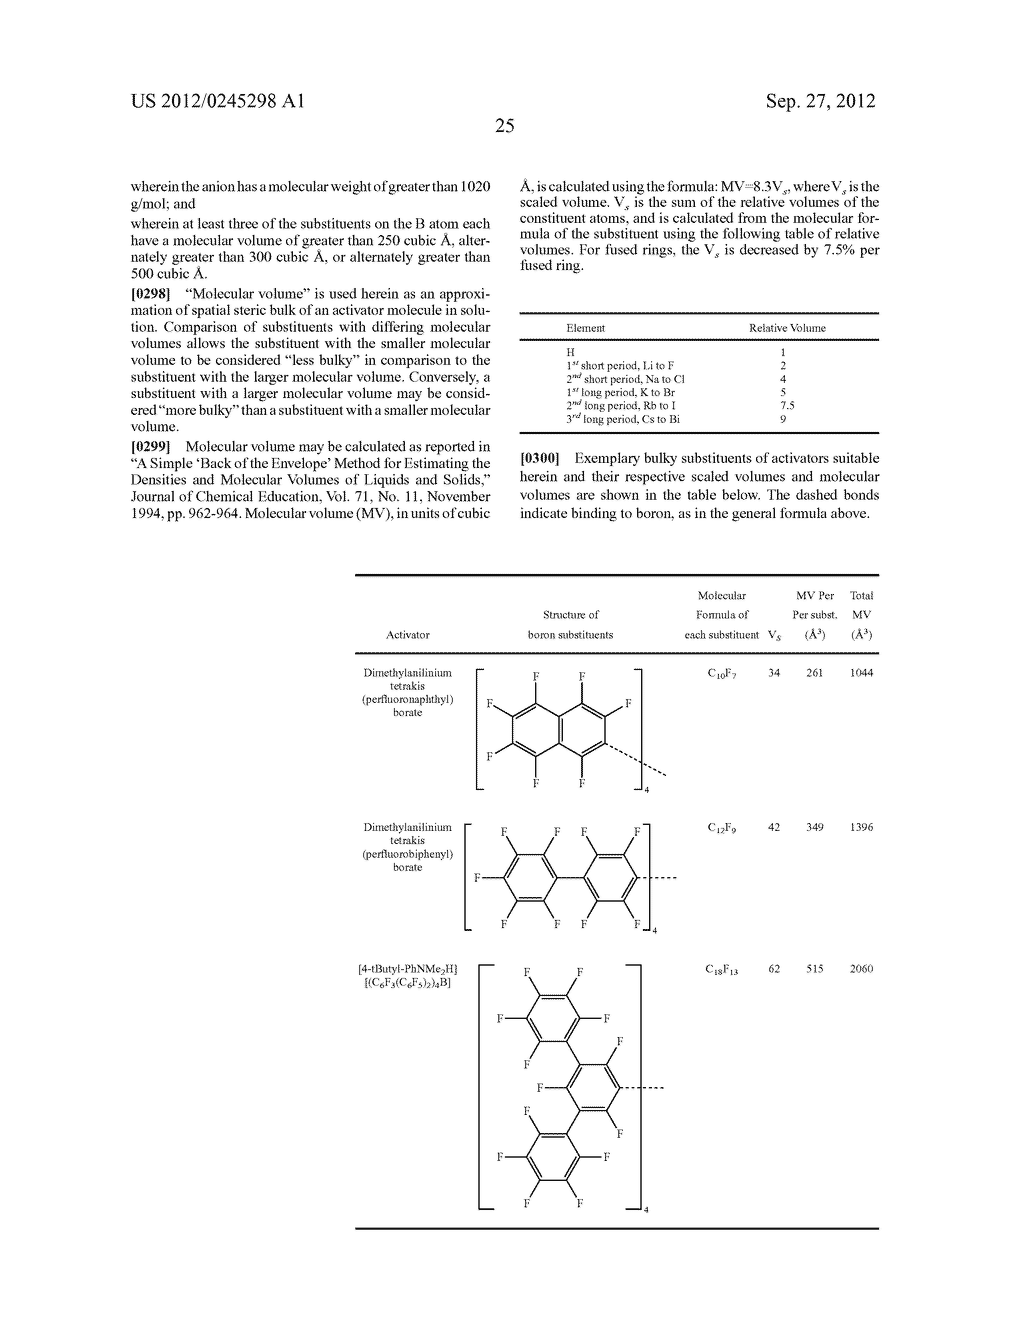 Amphiphilic Block Polymers Prepared by Alkene Metathesis - diagram, schematic, and image 26